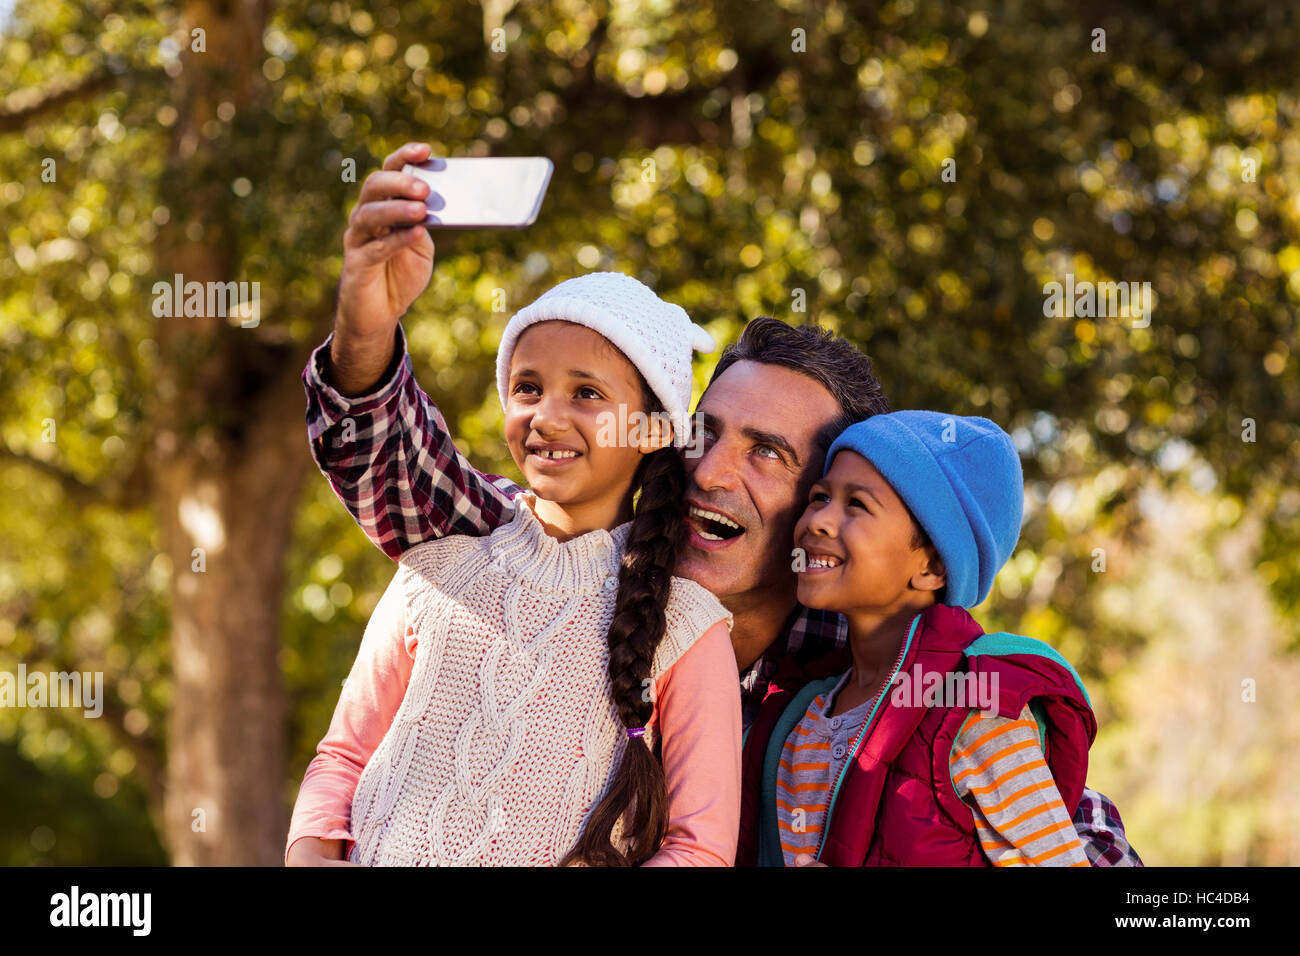 Cheerful father taking selfie with children - Stock Image